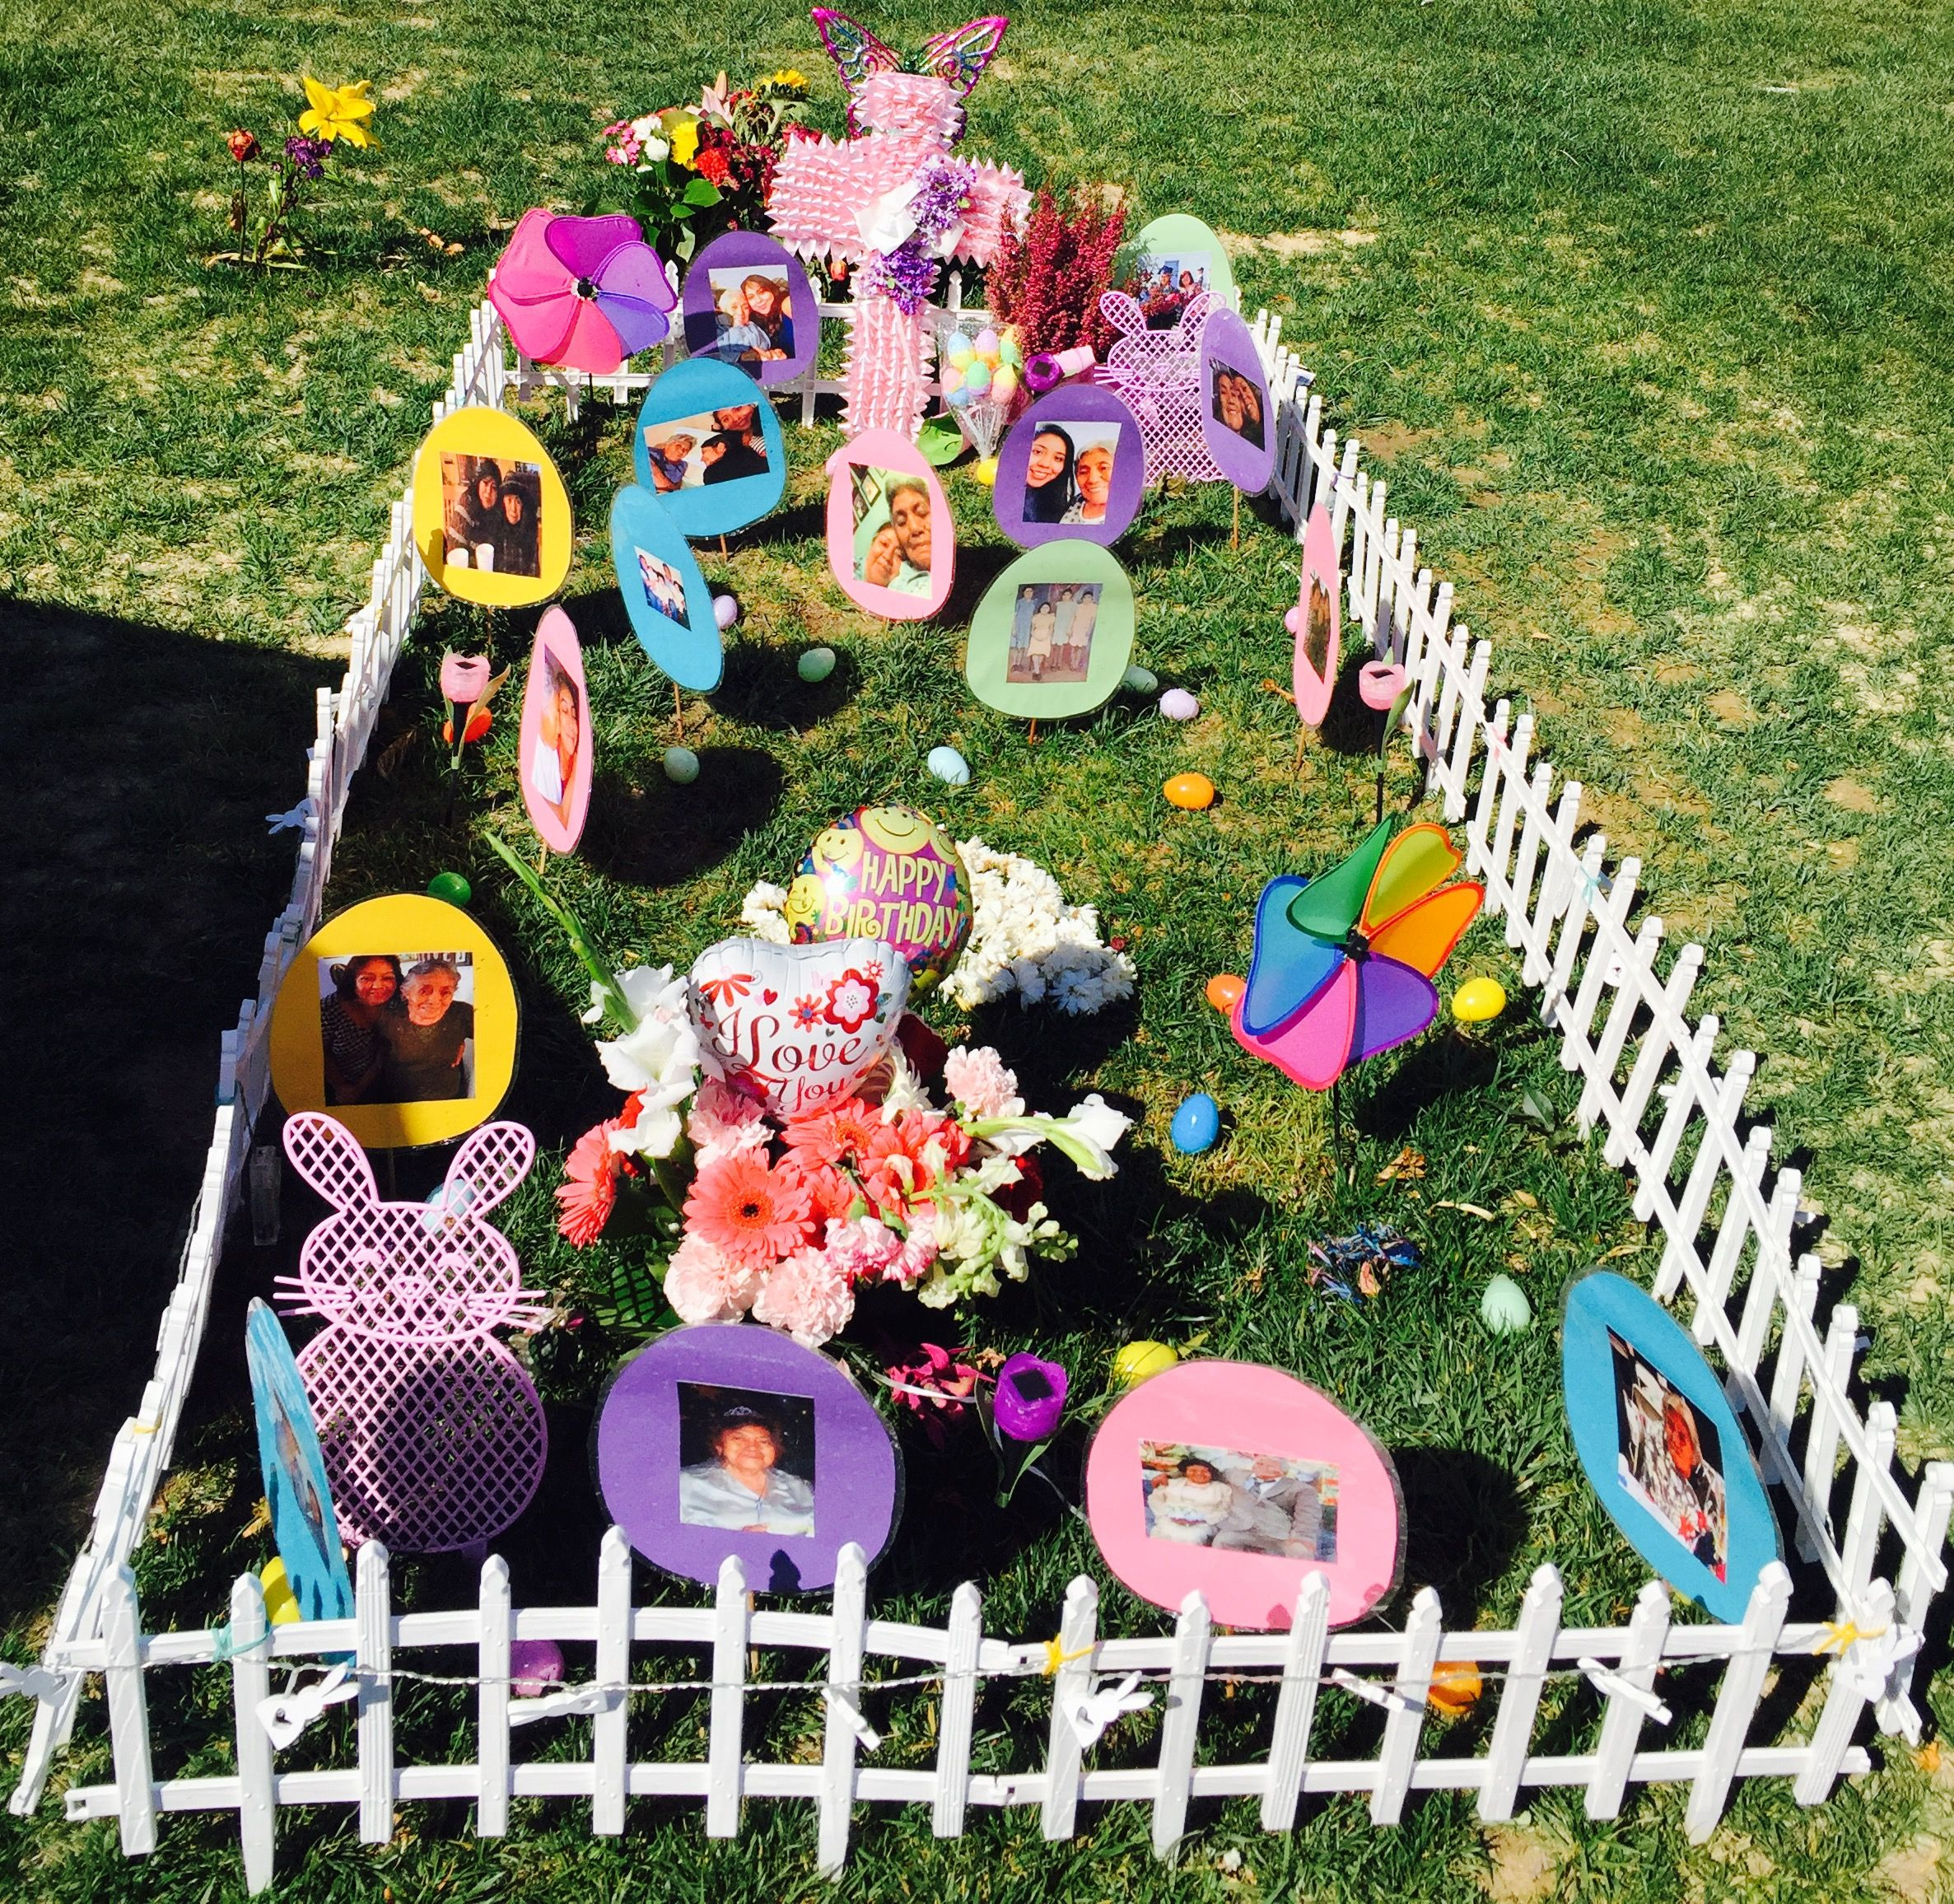 Diy Christmas Grave Decorations: Easter Gravesite Decorations